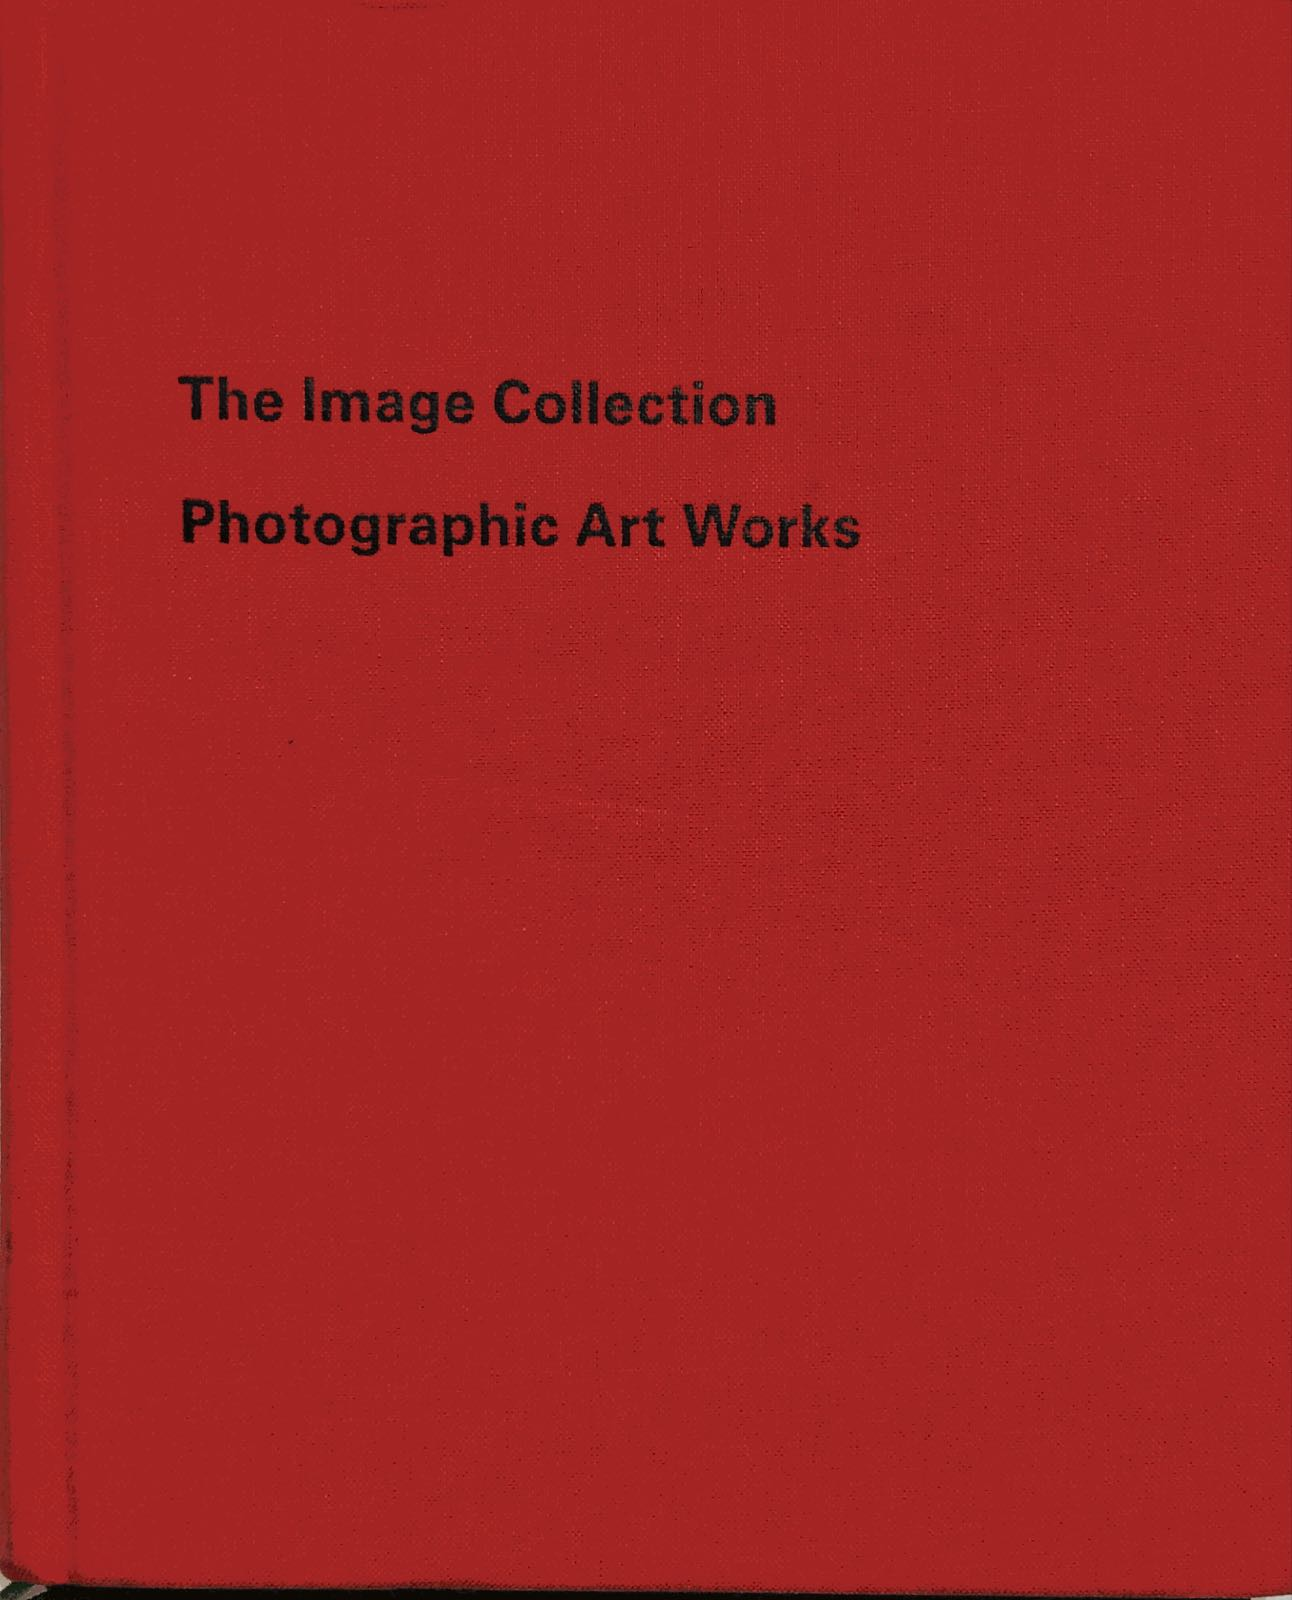 Galleri Image. The Image Collection